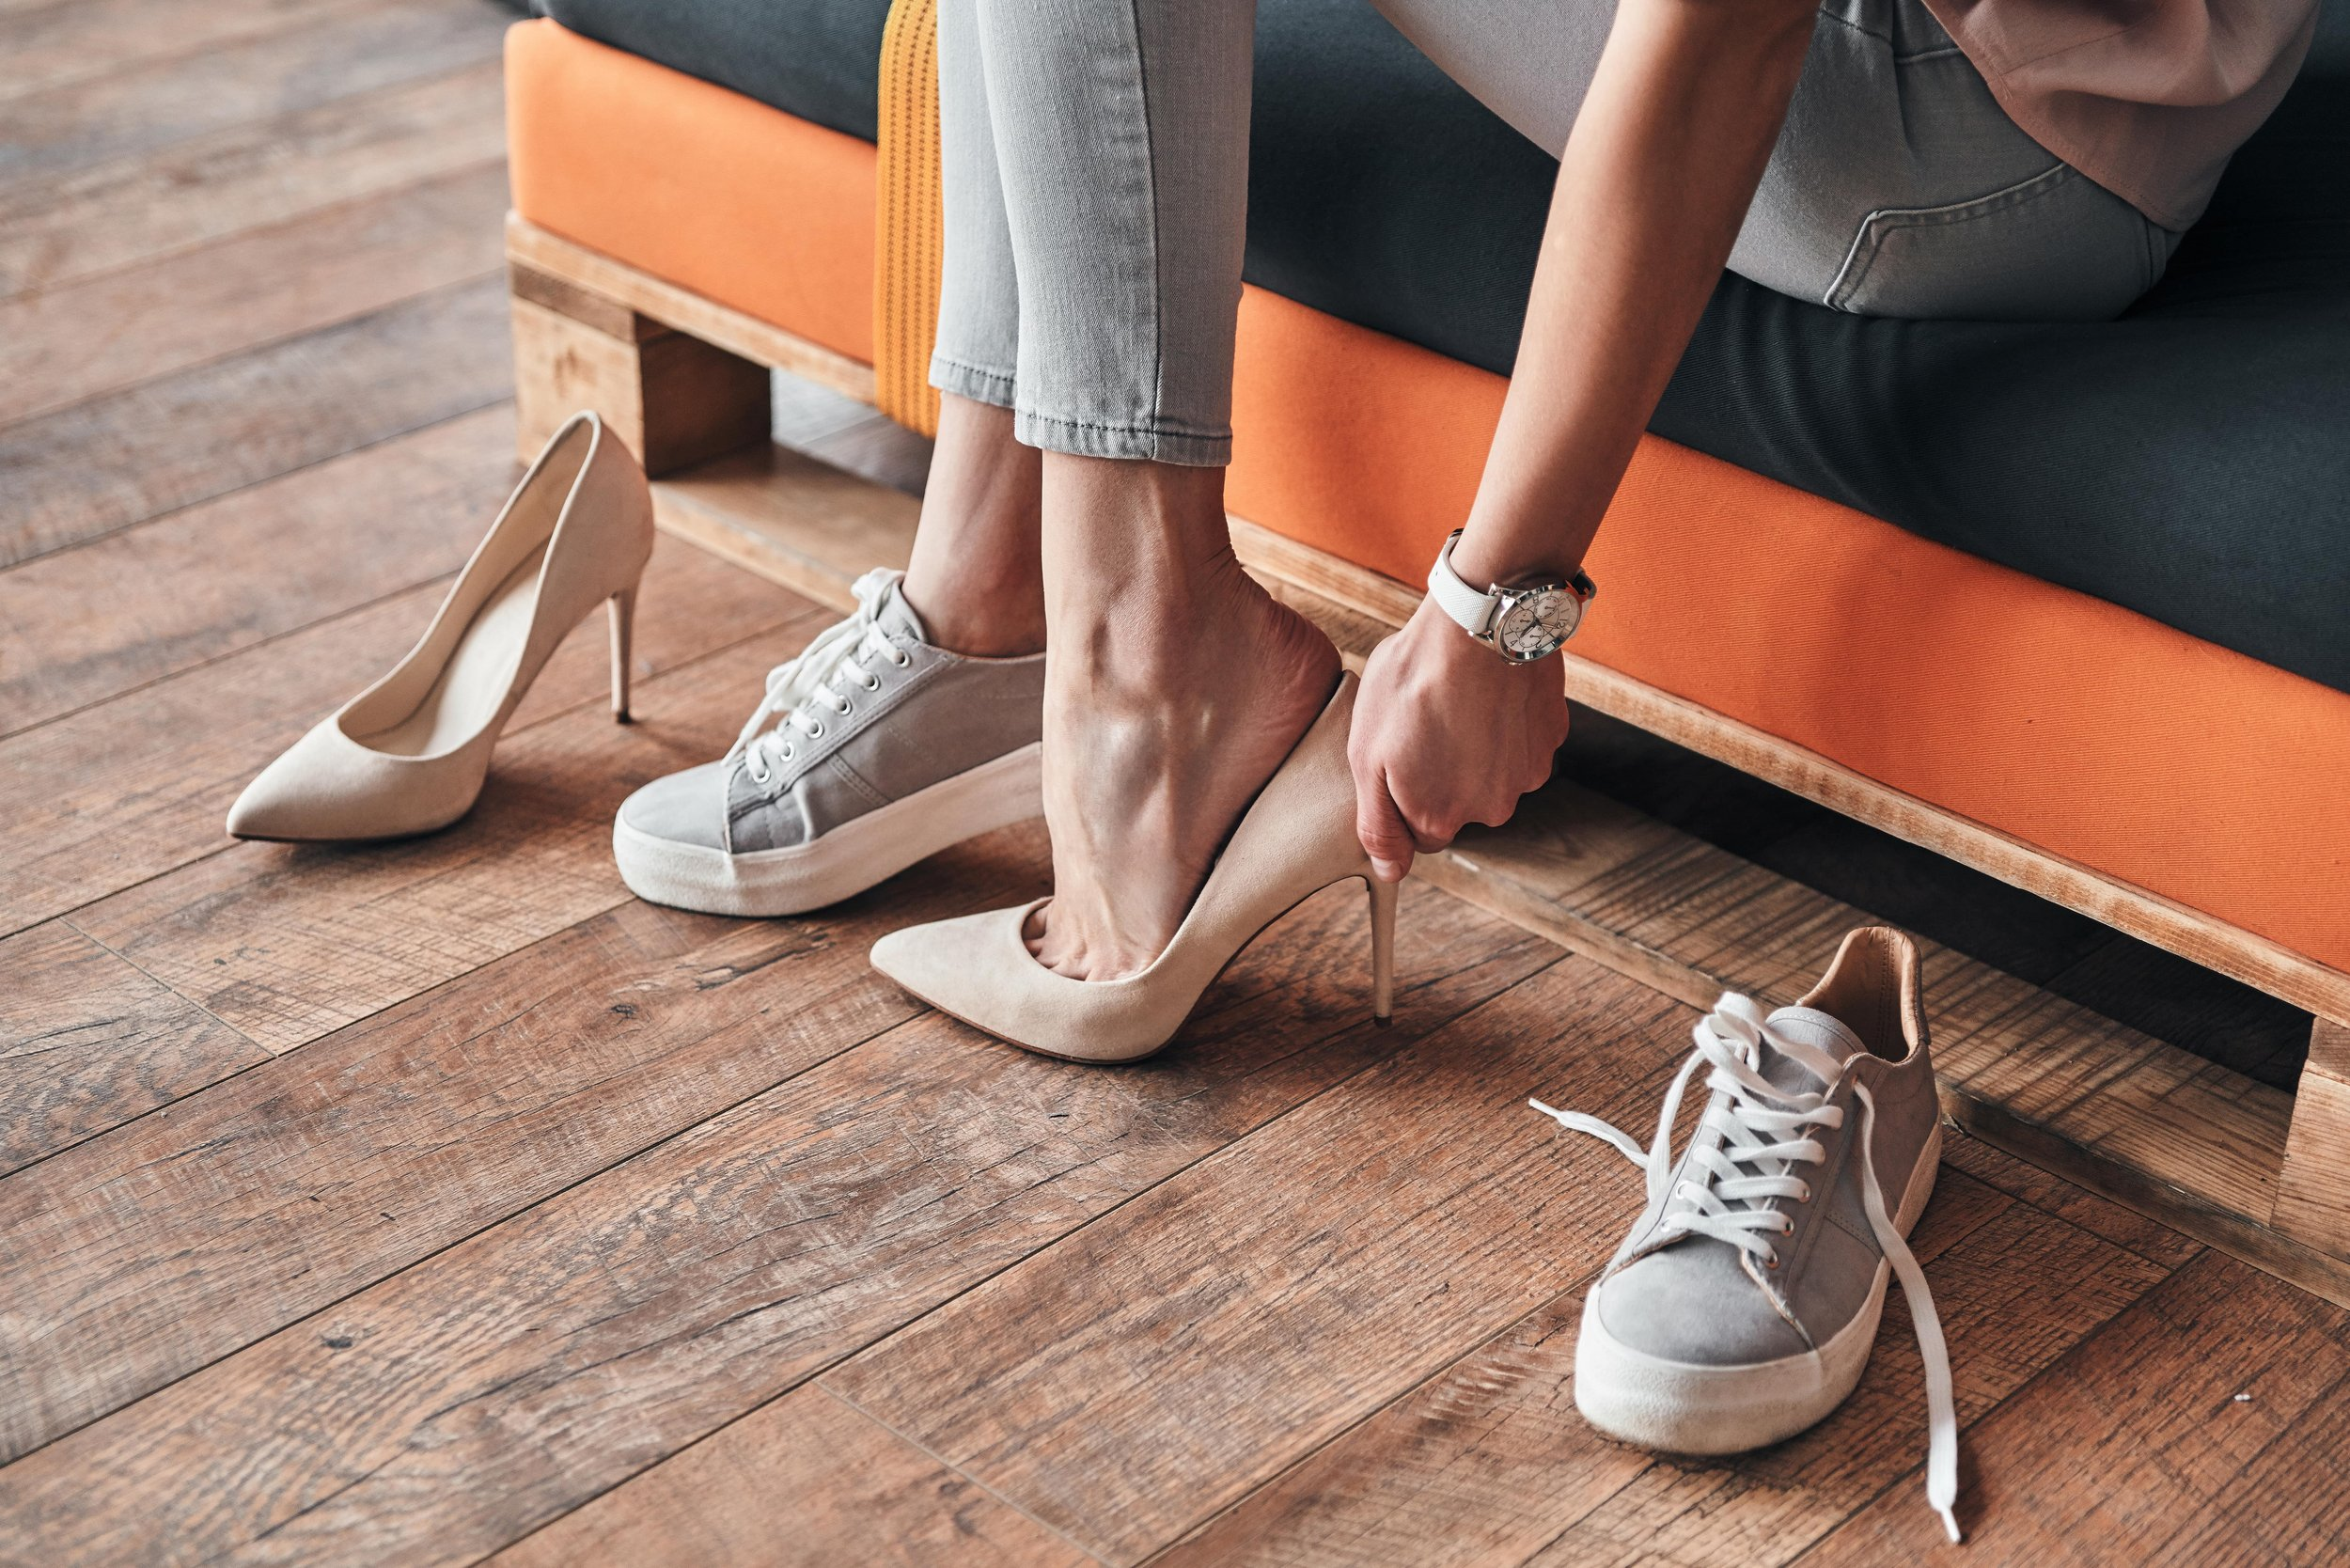 Sneakers and high heels